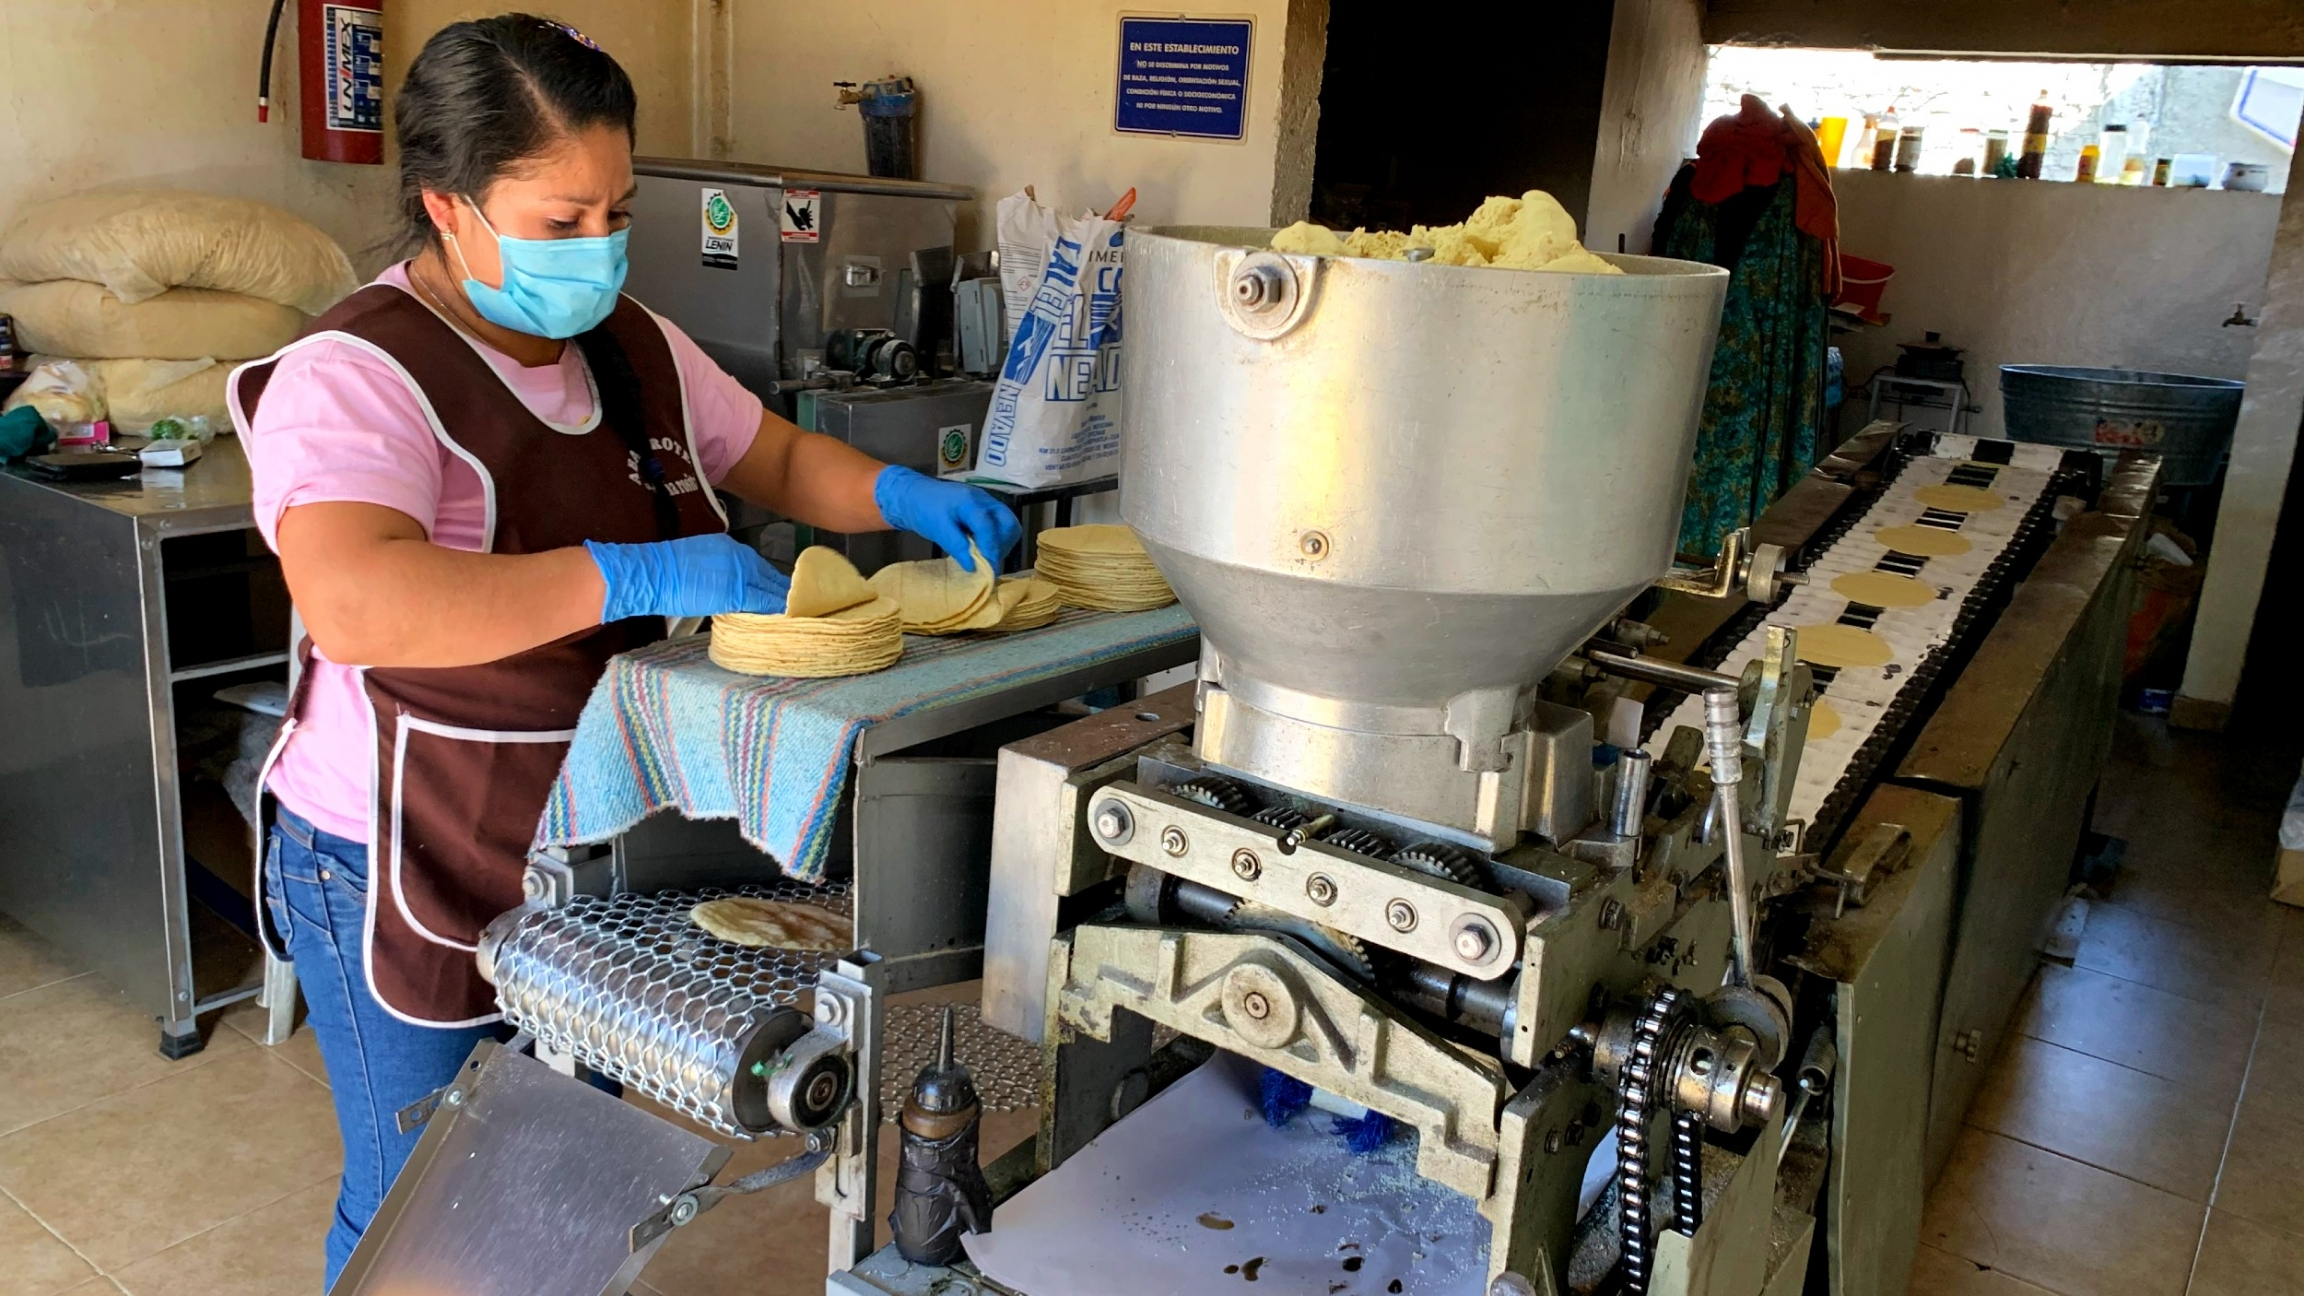 Marta Hernandez stacks tortillas coming out of the oven at La Abuela.